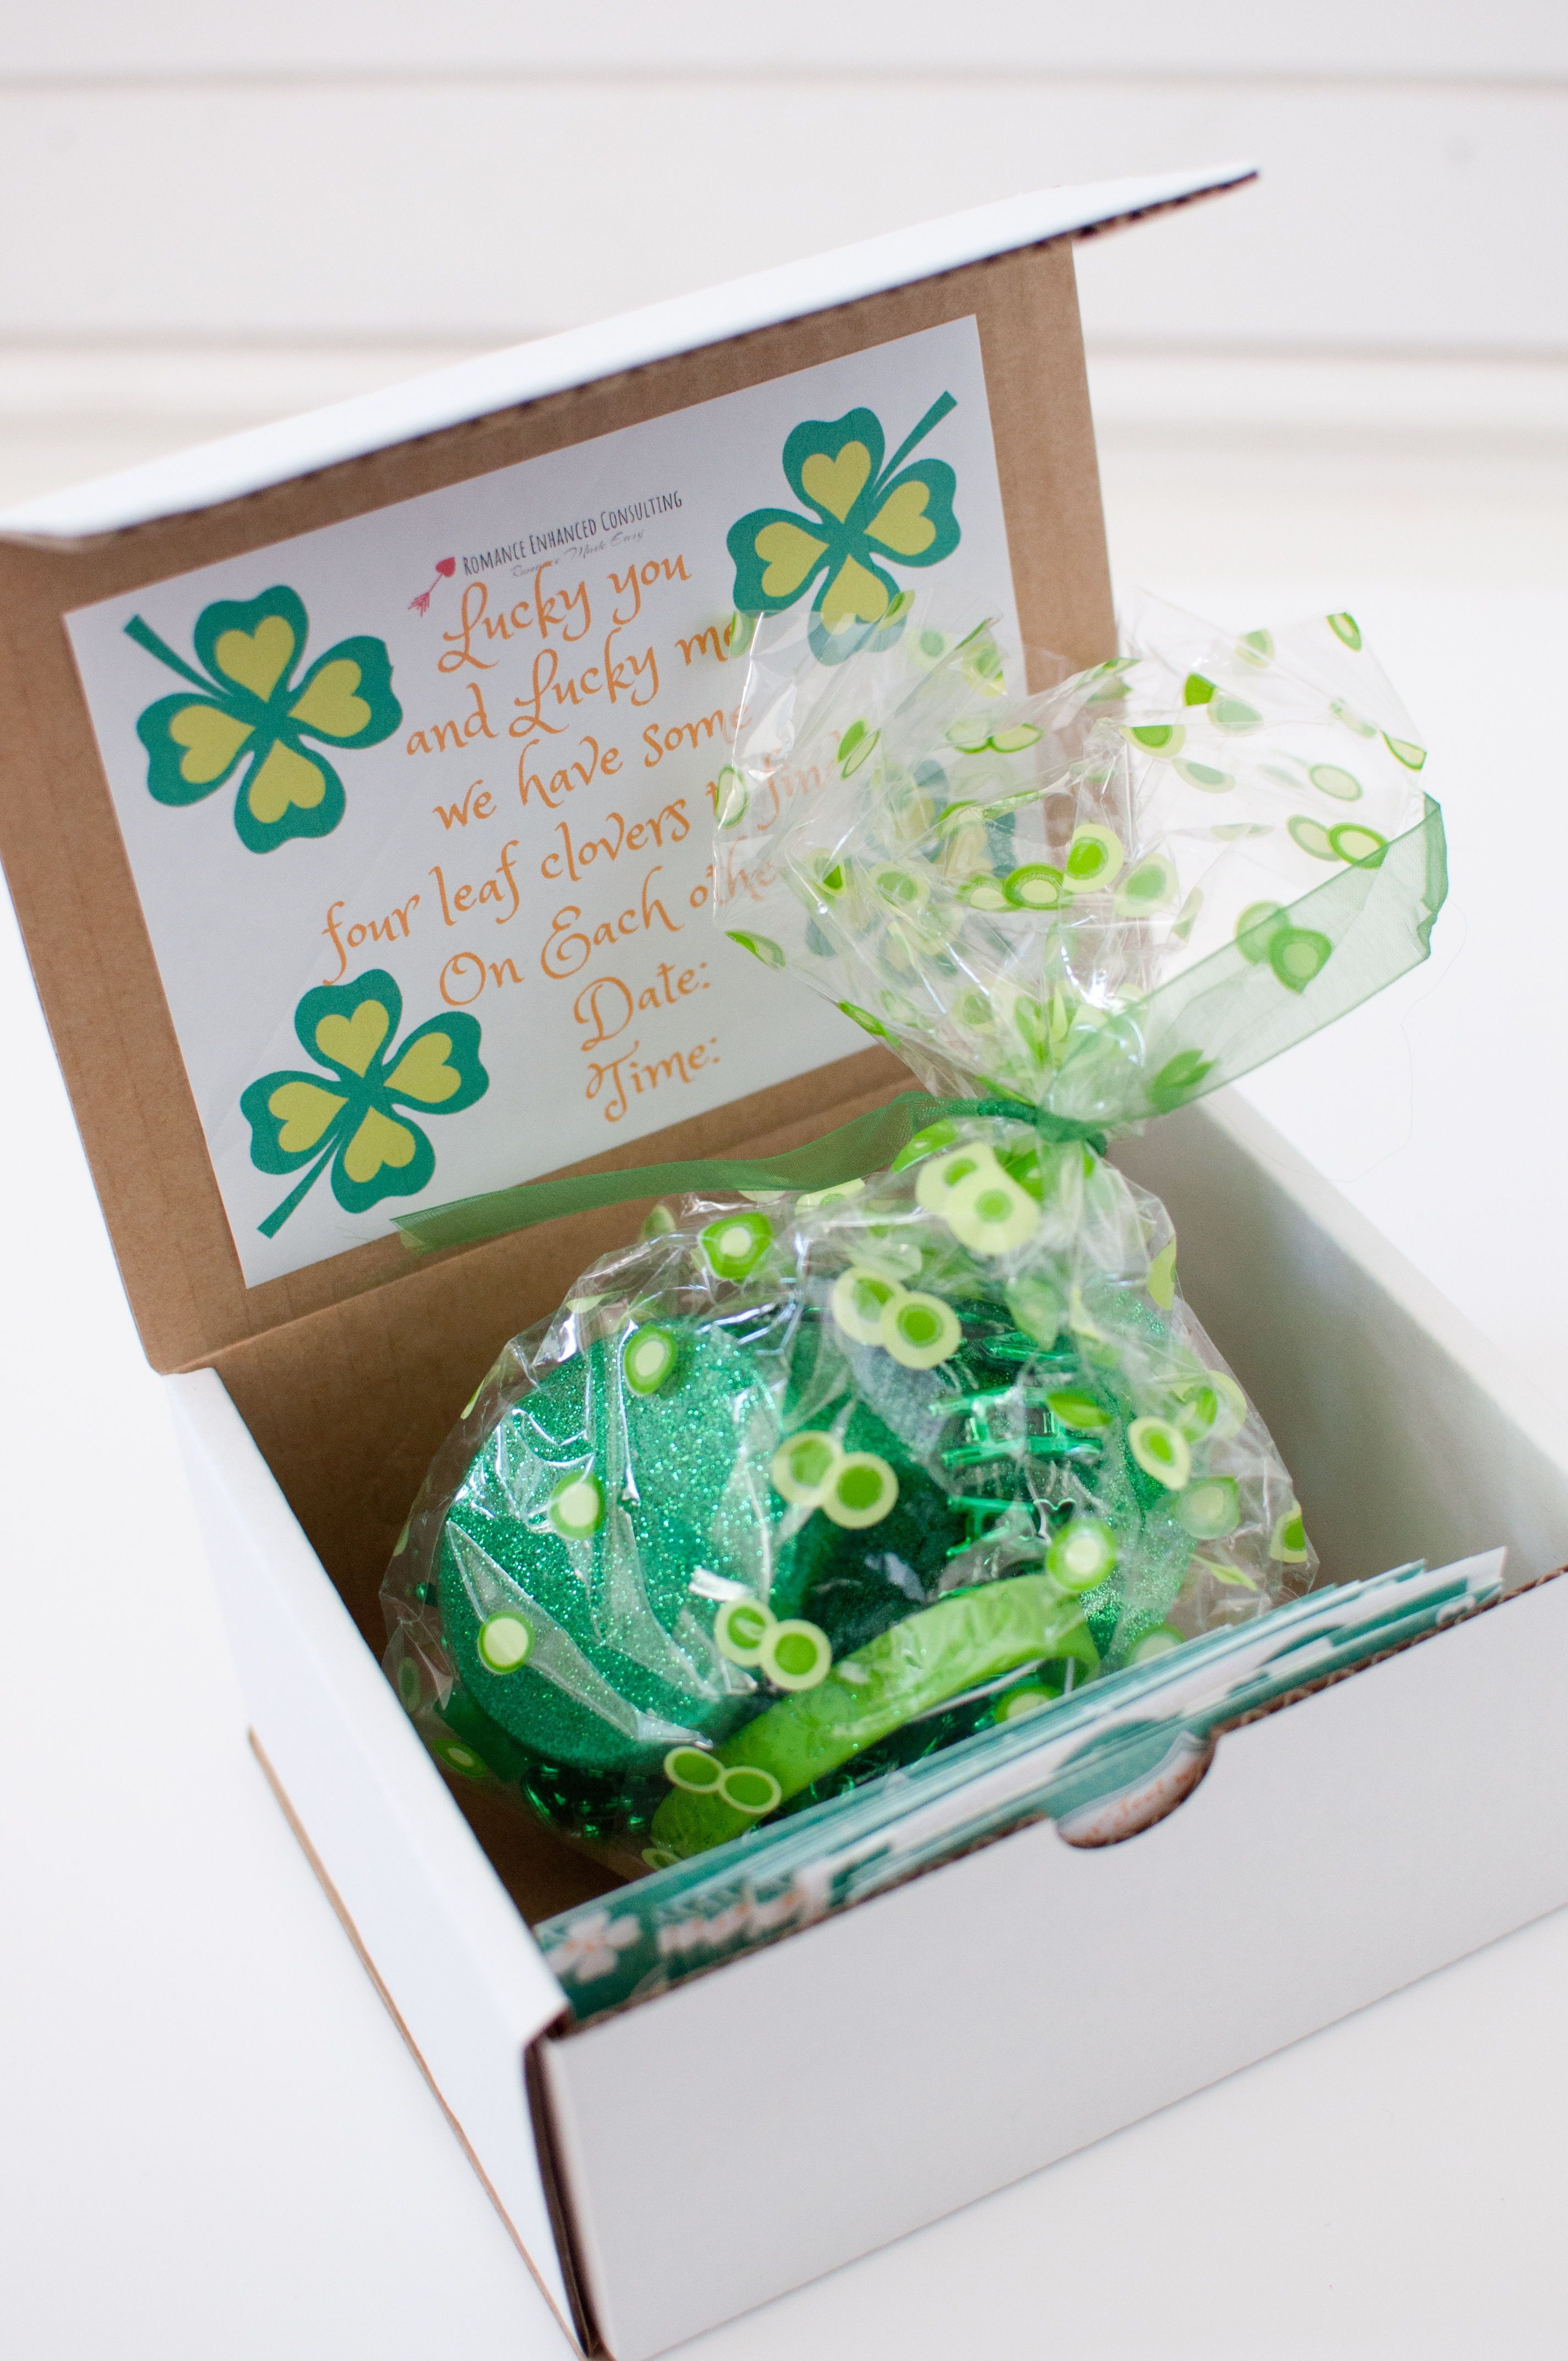 Free st patricks day accessories in 2020 bedroom games